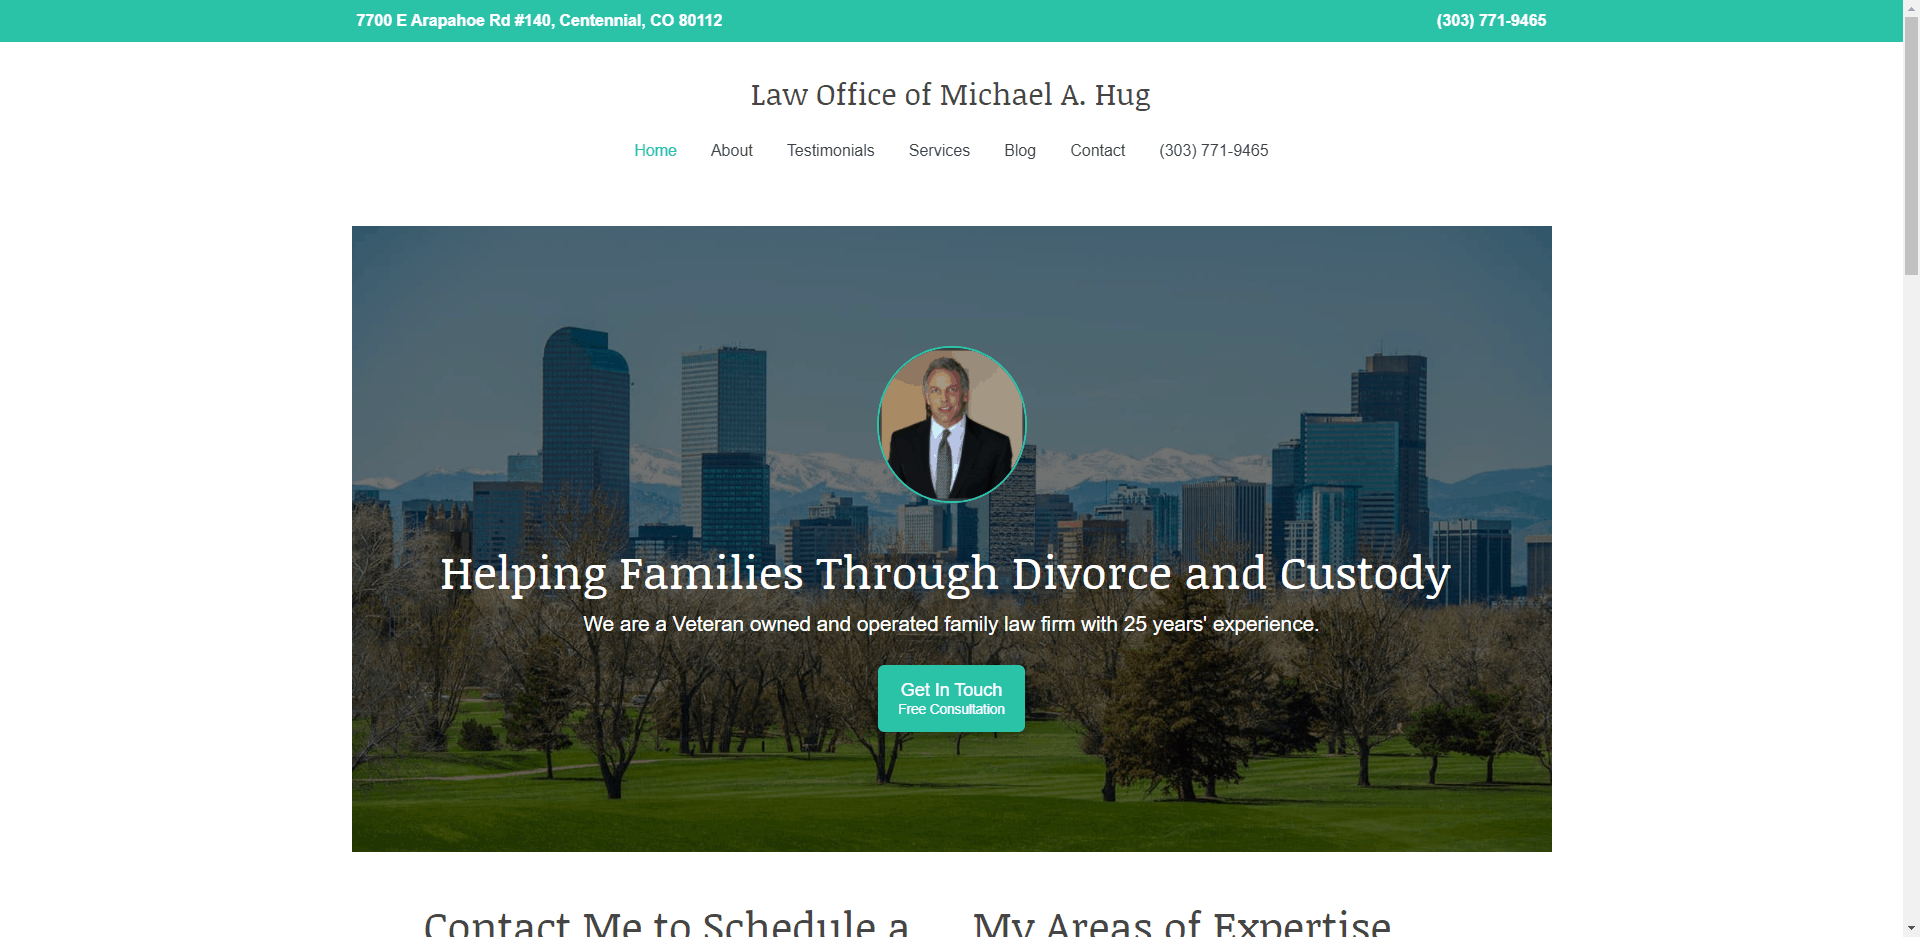 Screenshot of the website I built: join.coloradohomerealty.com